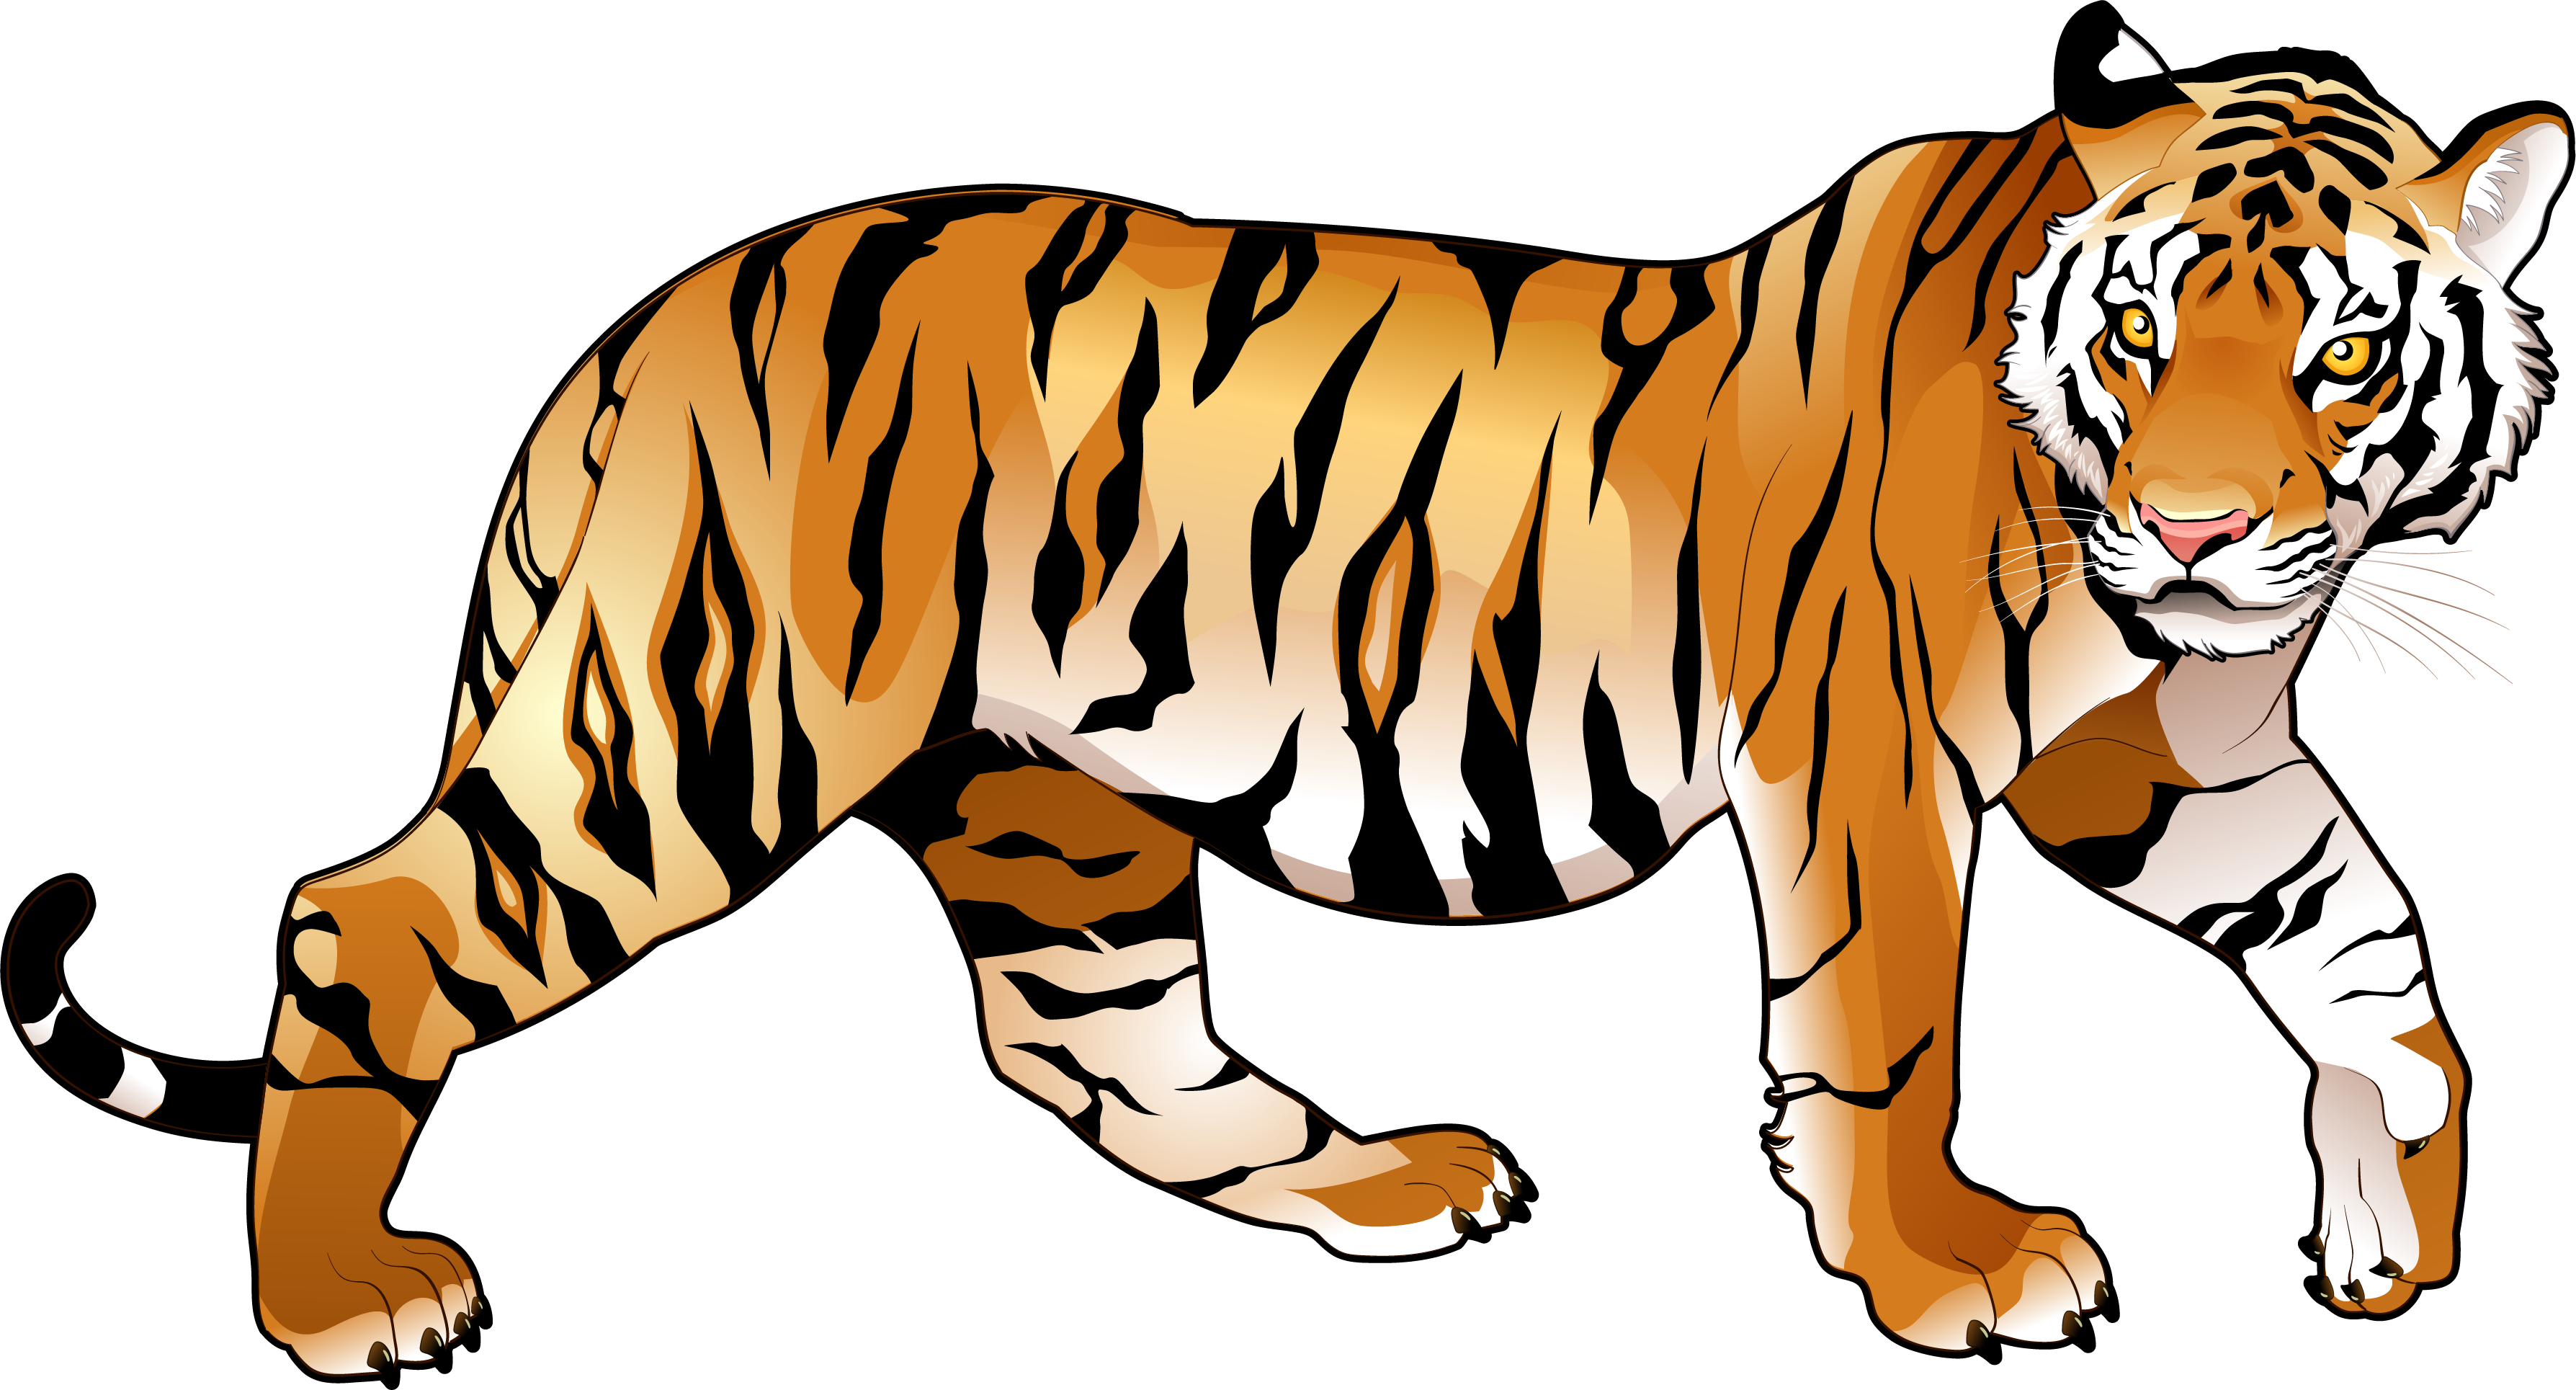 Free basketball clipart tiger png free library Bengal Tiger Clipart at GetDrawings.com | Free for personal use ... png free library